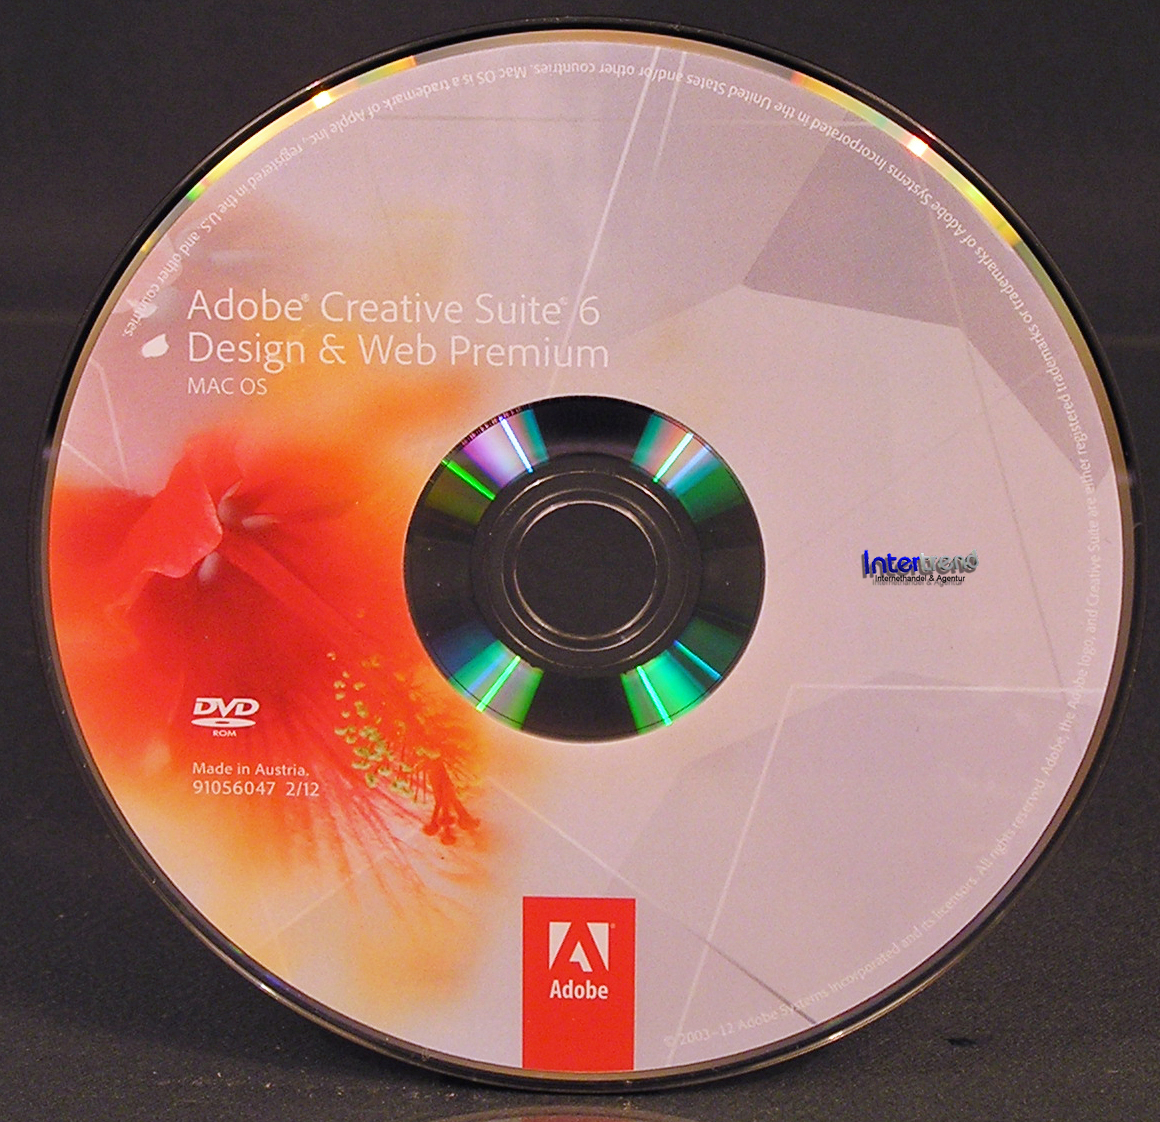 Where do you buy Adobe CS4 Design Standard from in UK?